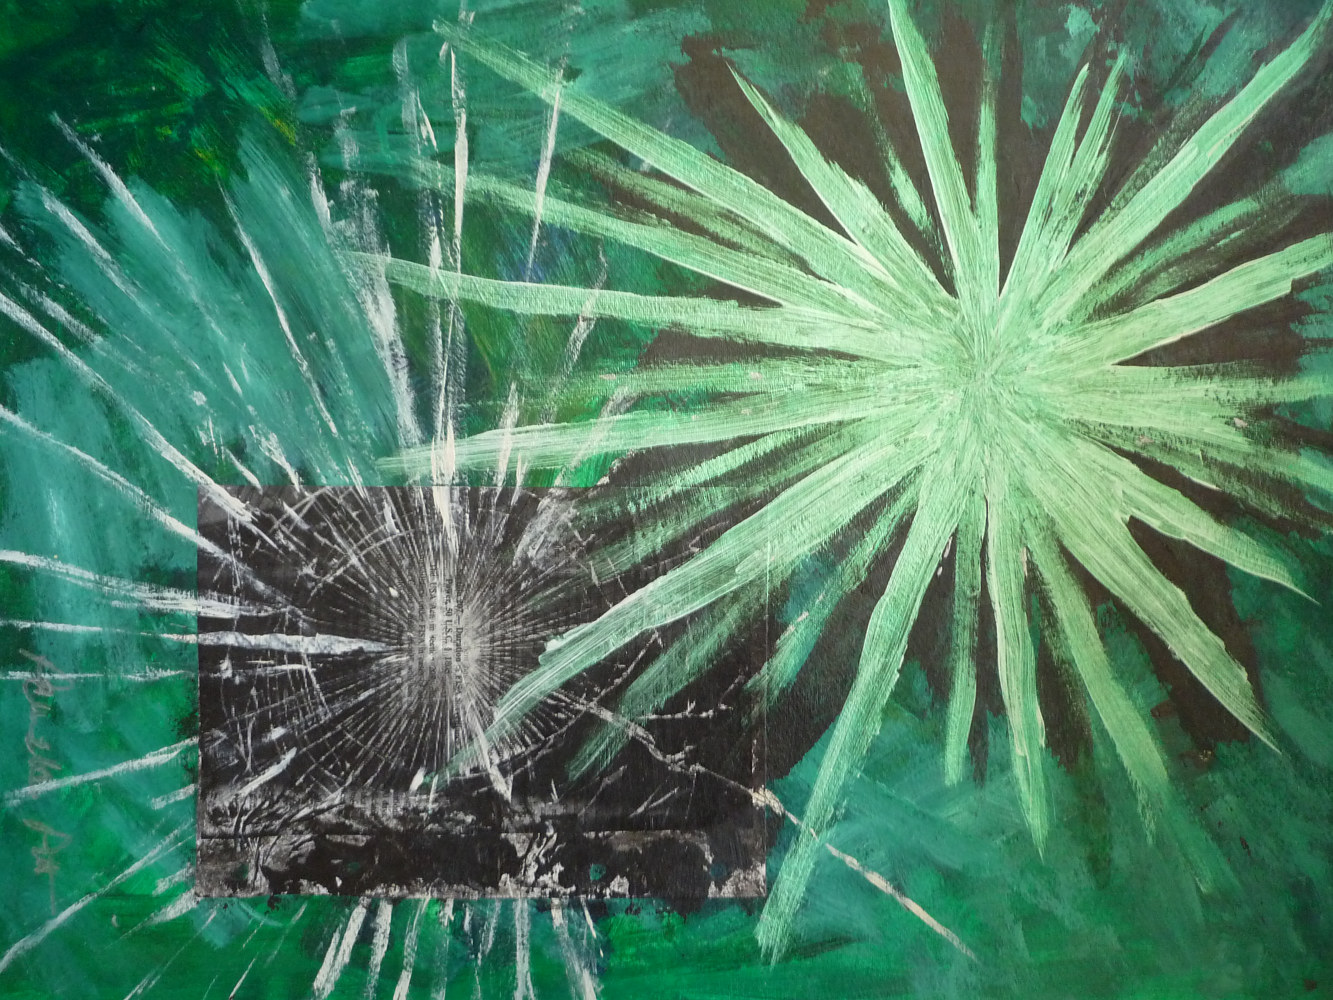 Mixed-media artwork Cracked by Pamela Pitt